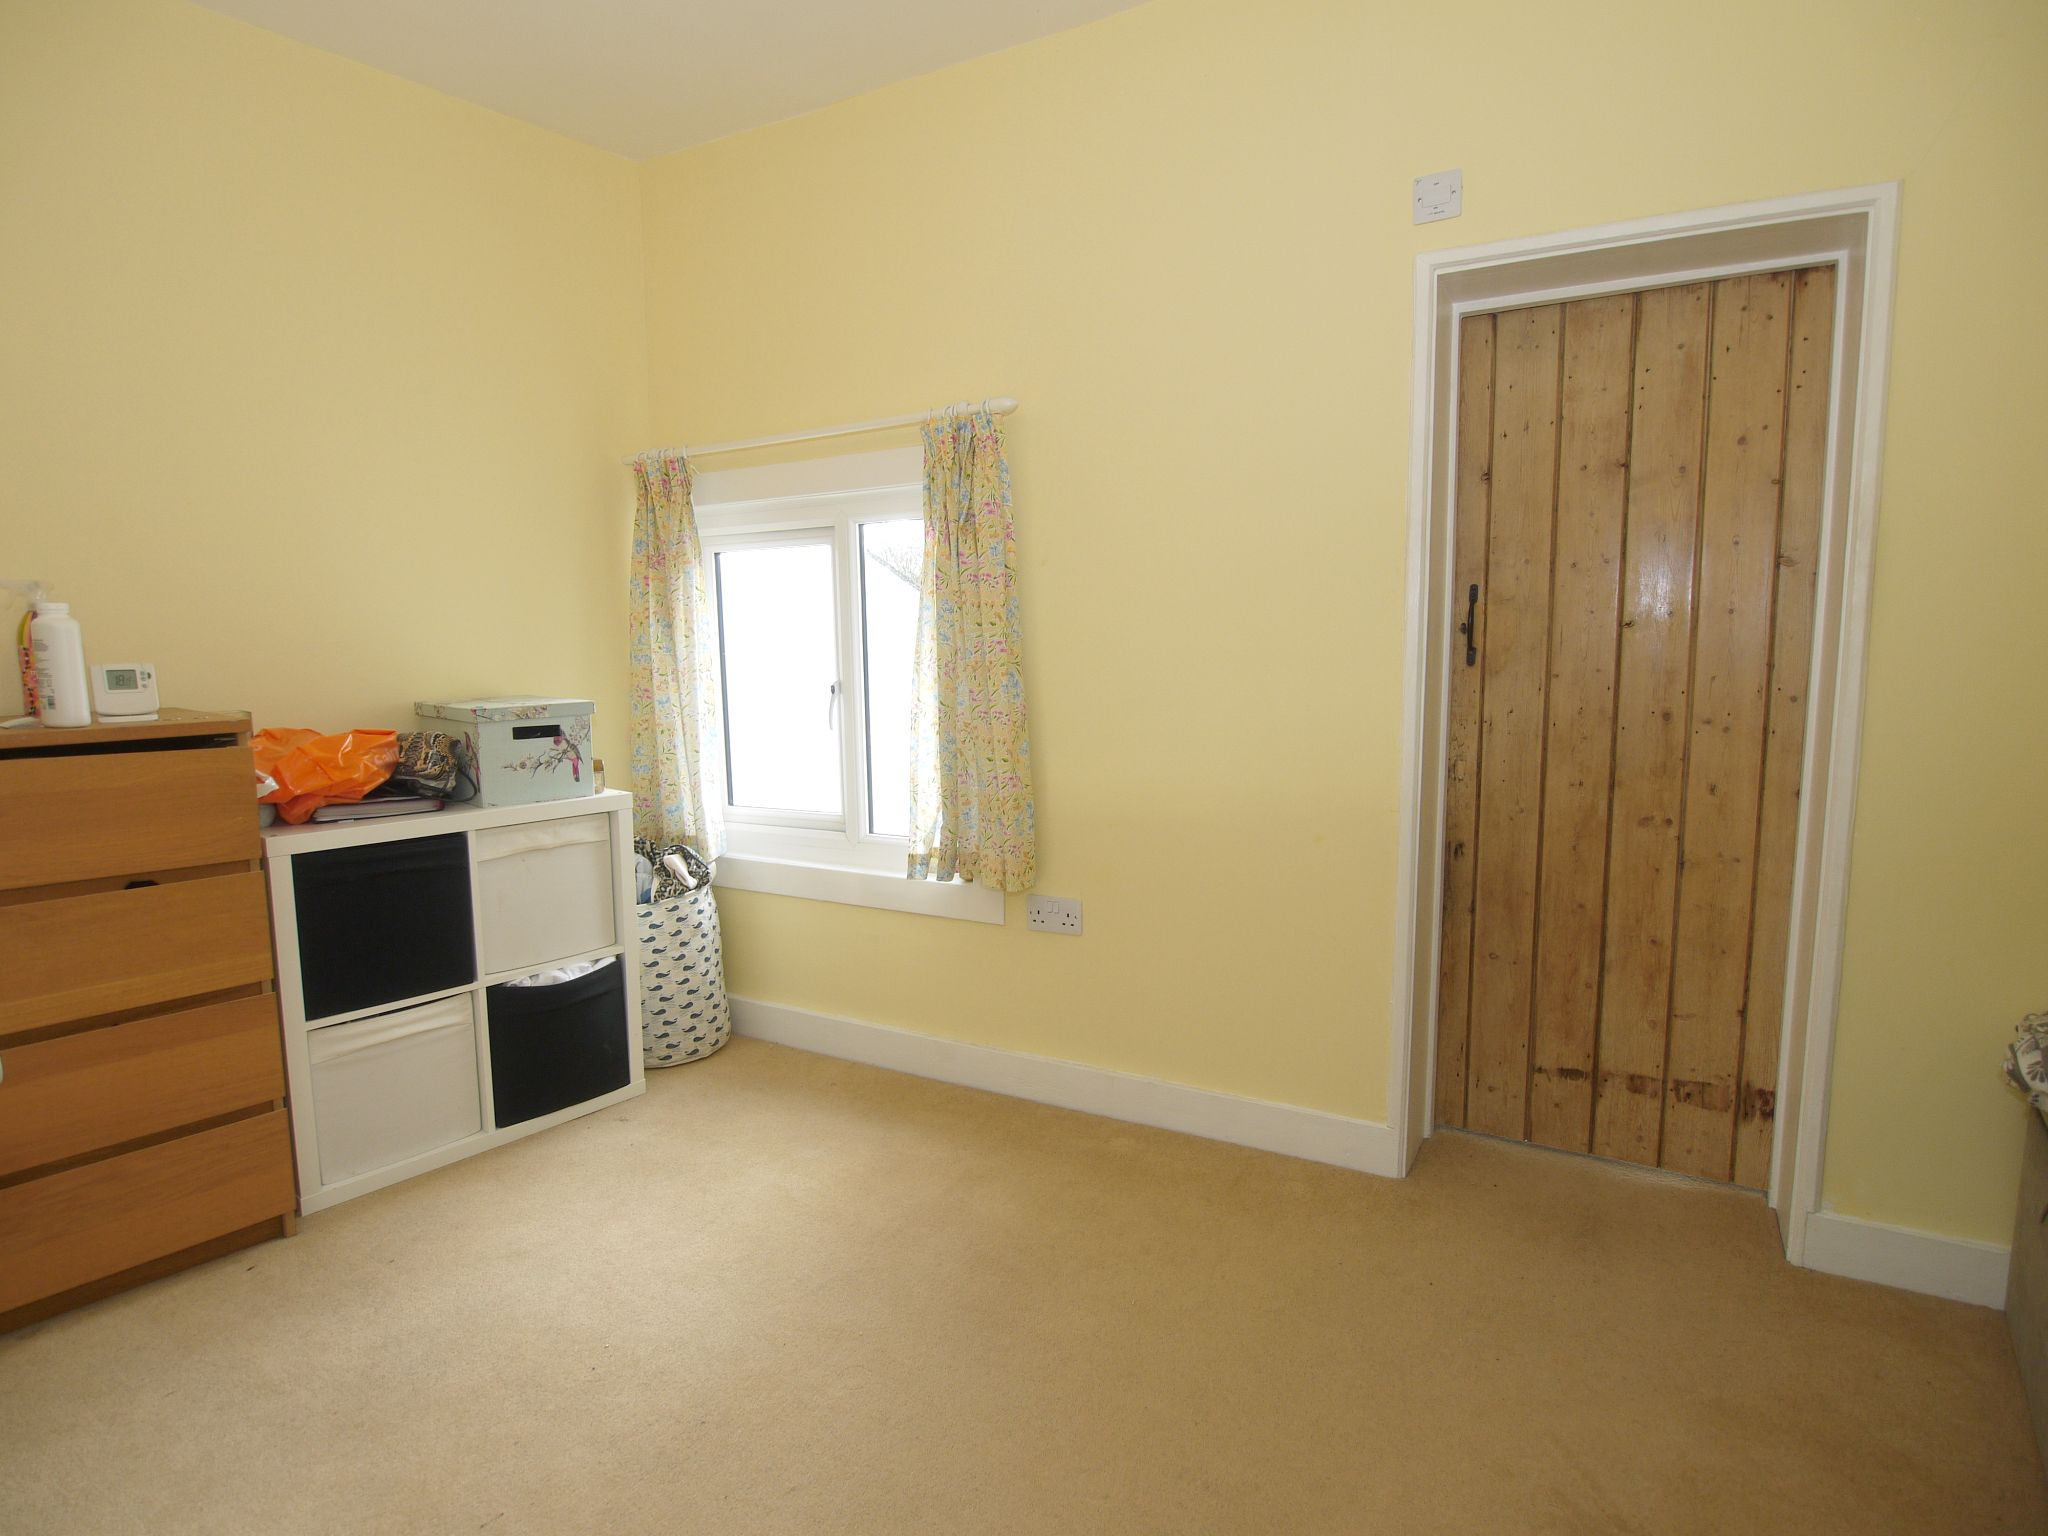 2 bedroom mid terraced house Sale Agreed in Sevenoaks - Photograph 6